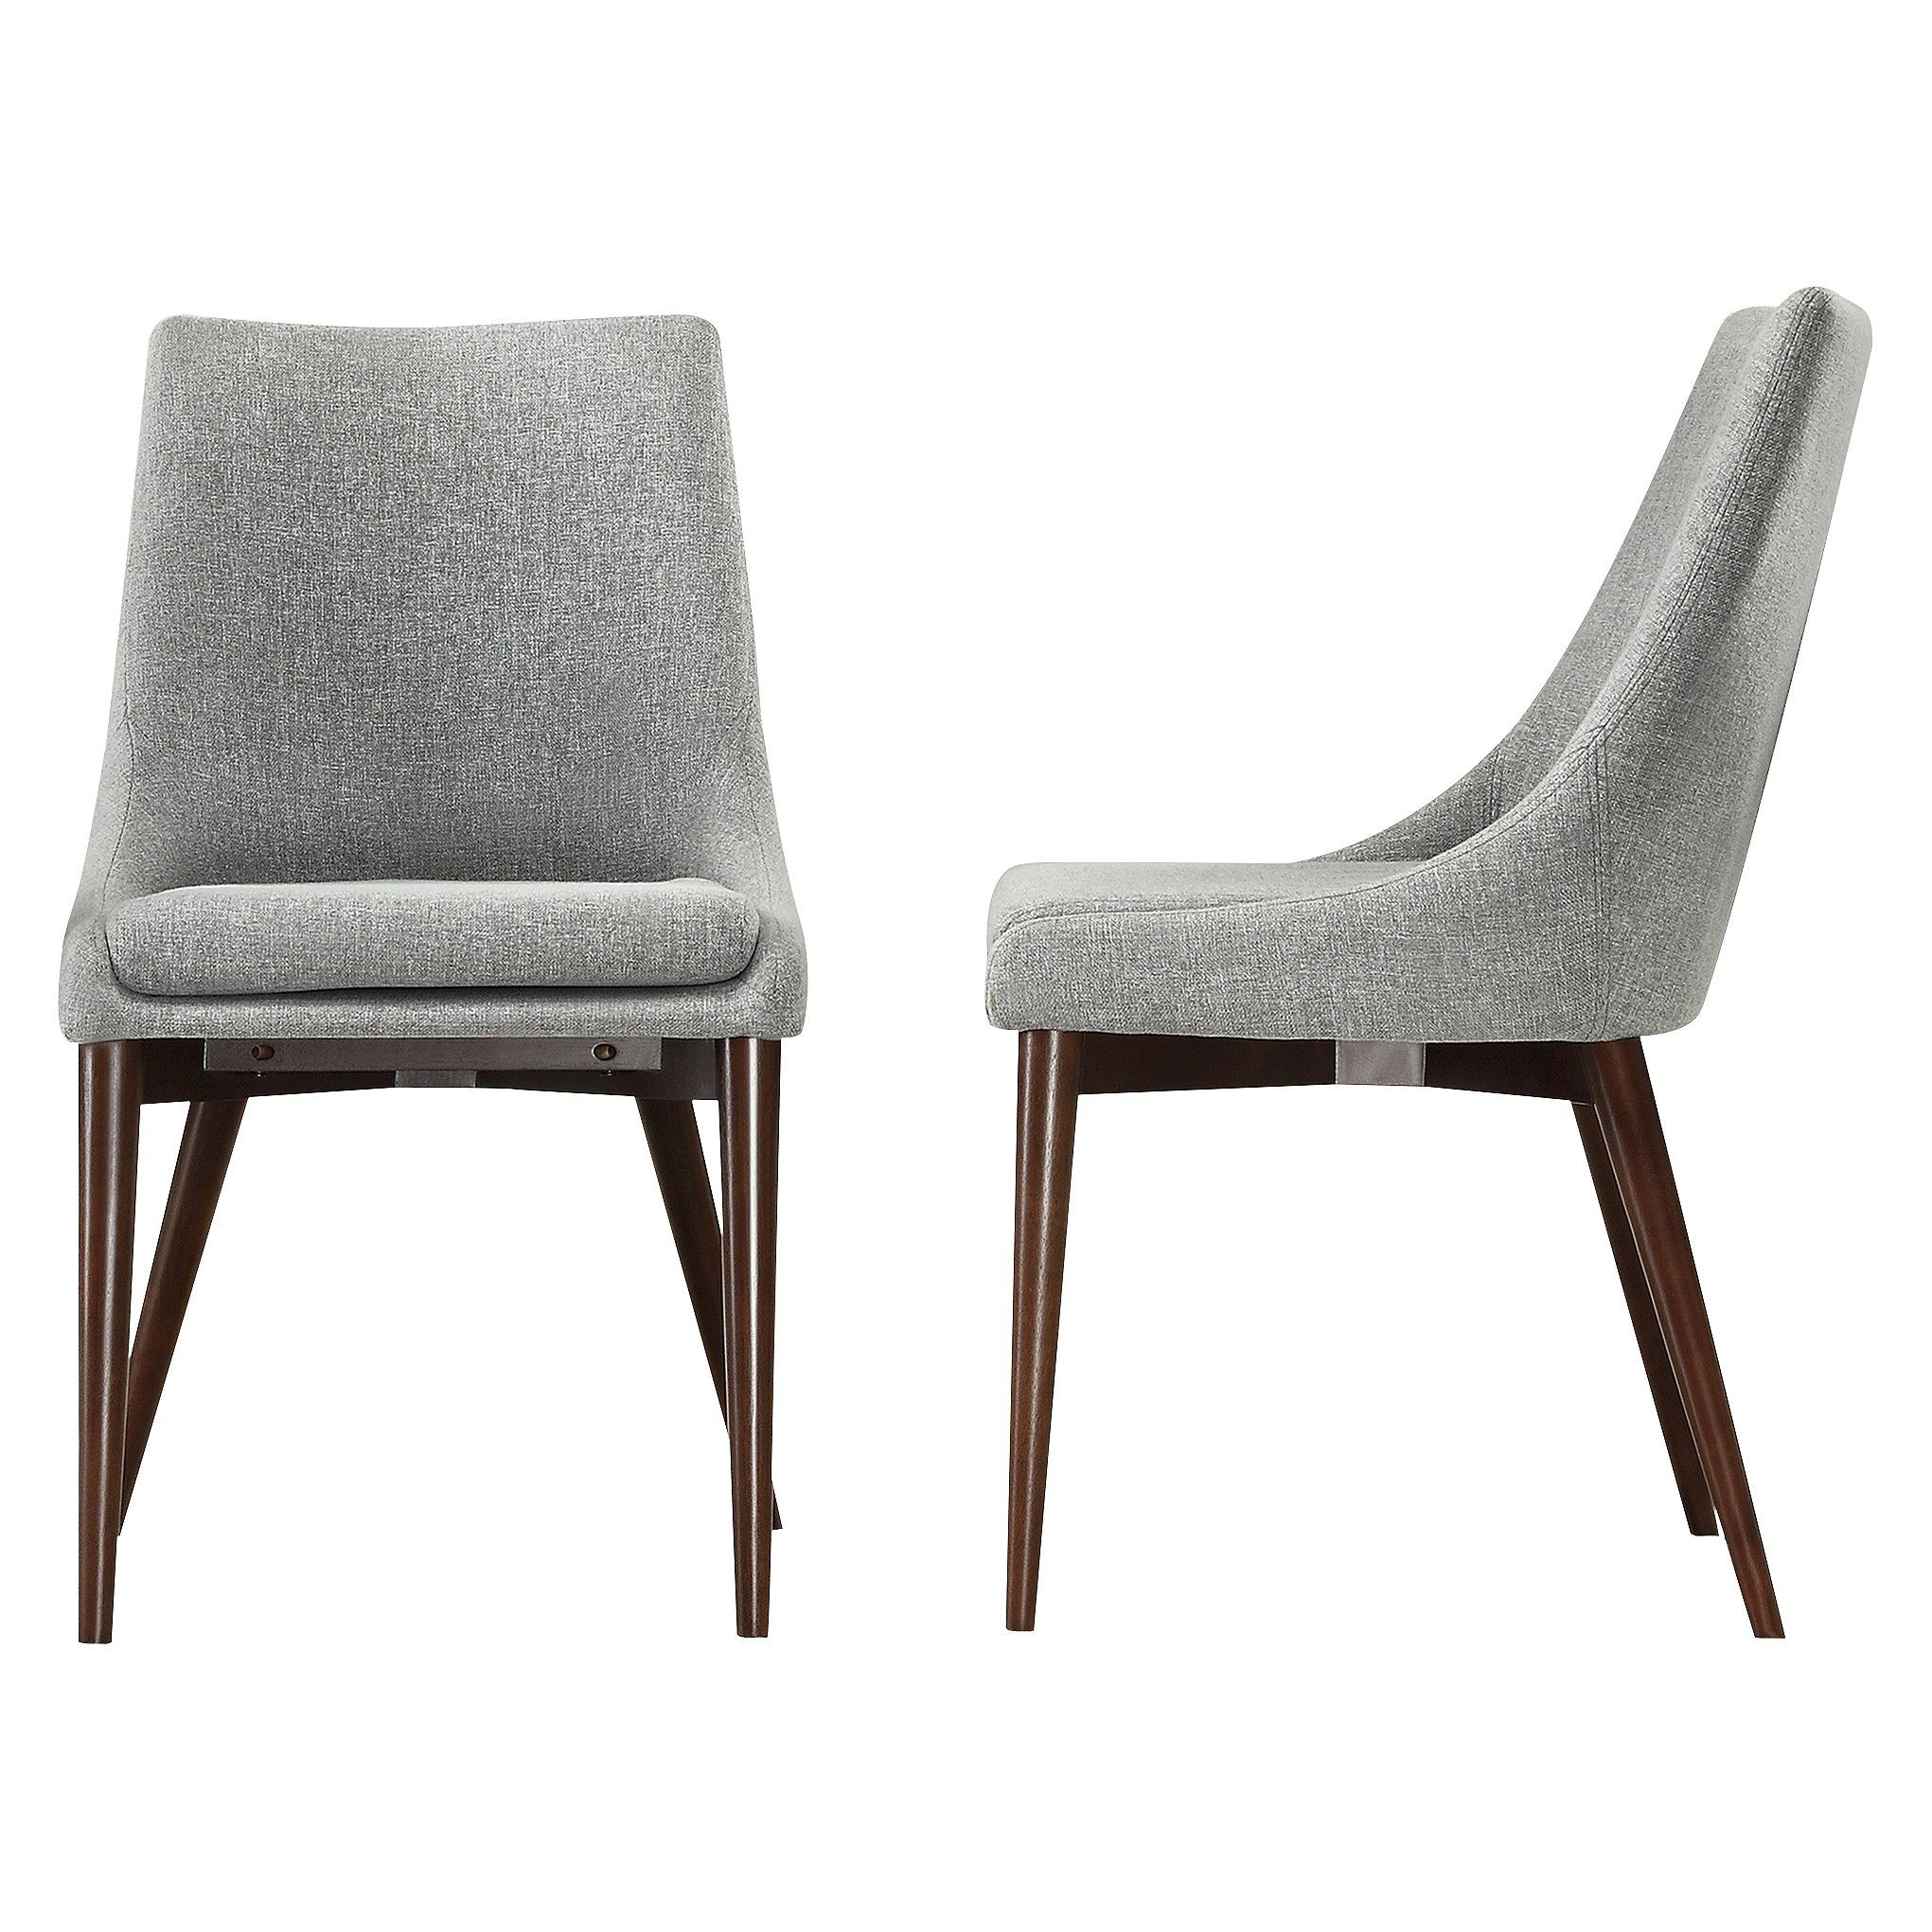 With a nod to Mid Century design, the Sullivan Dining Chair is an exciting  seating